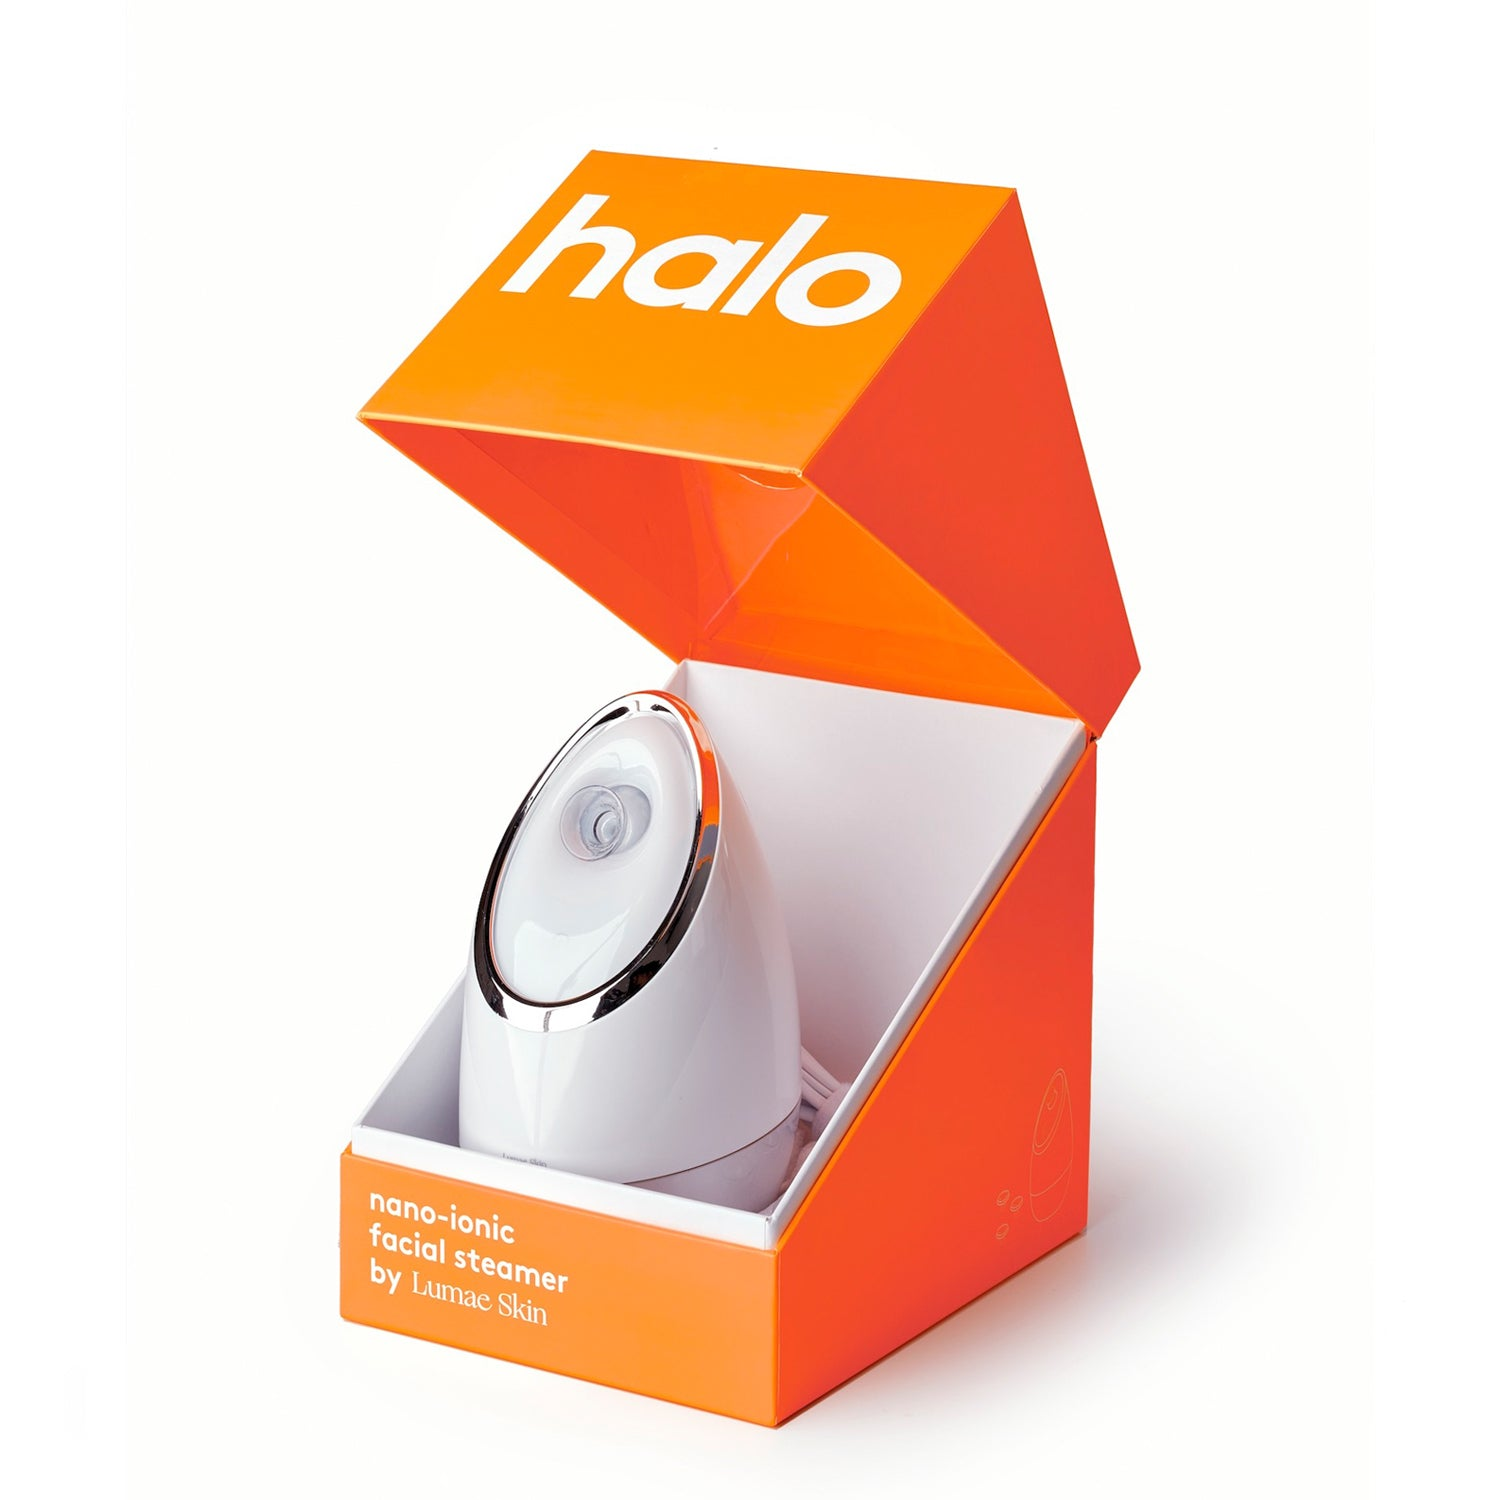 Halo Nano-Ionic Facial Steamer